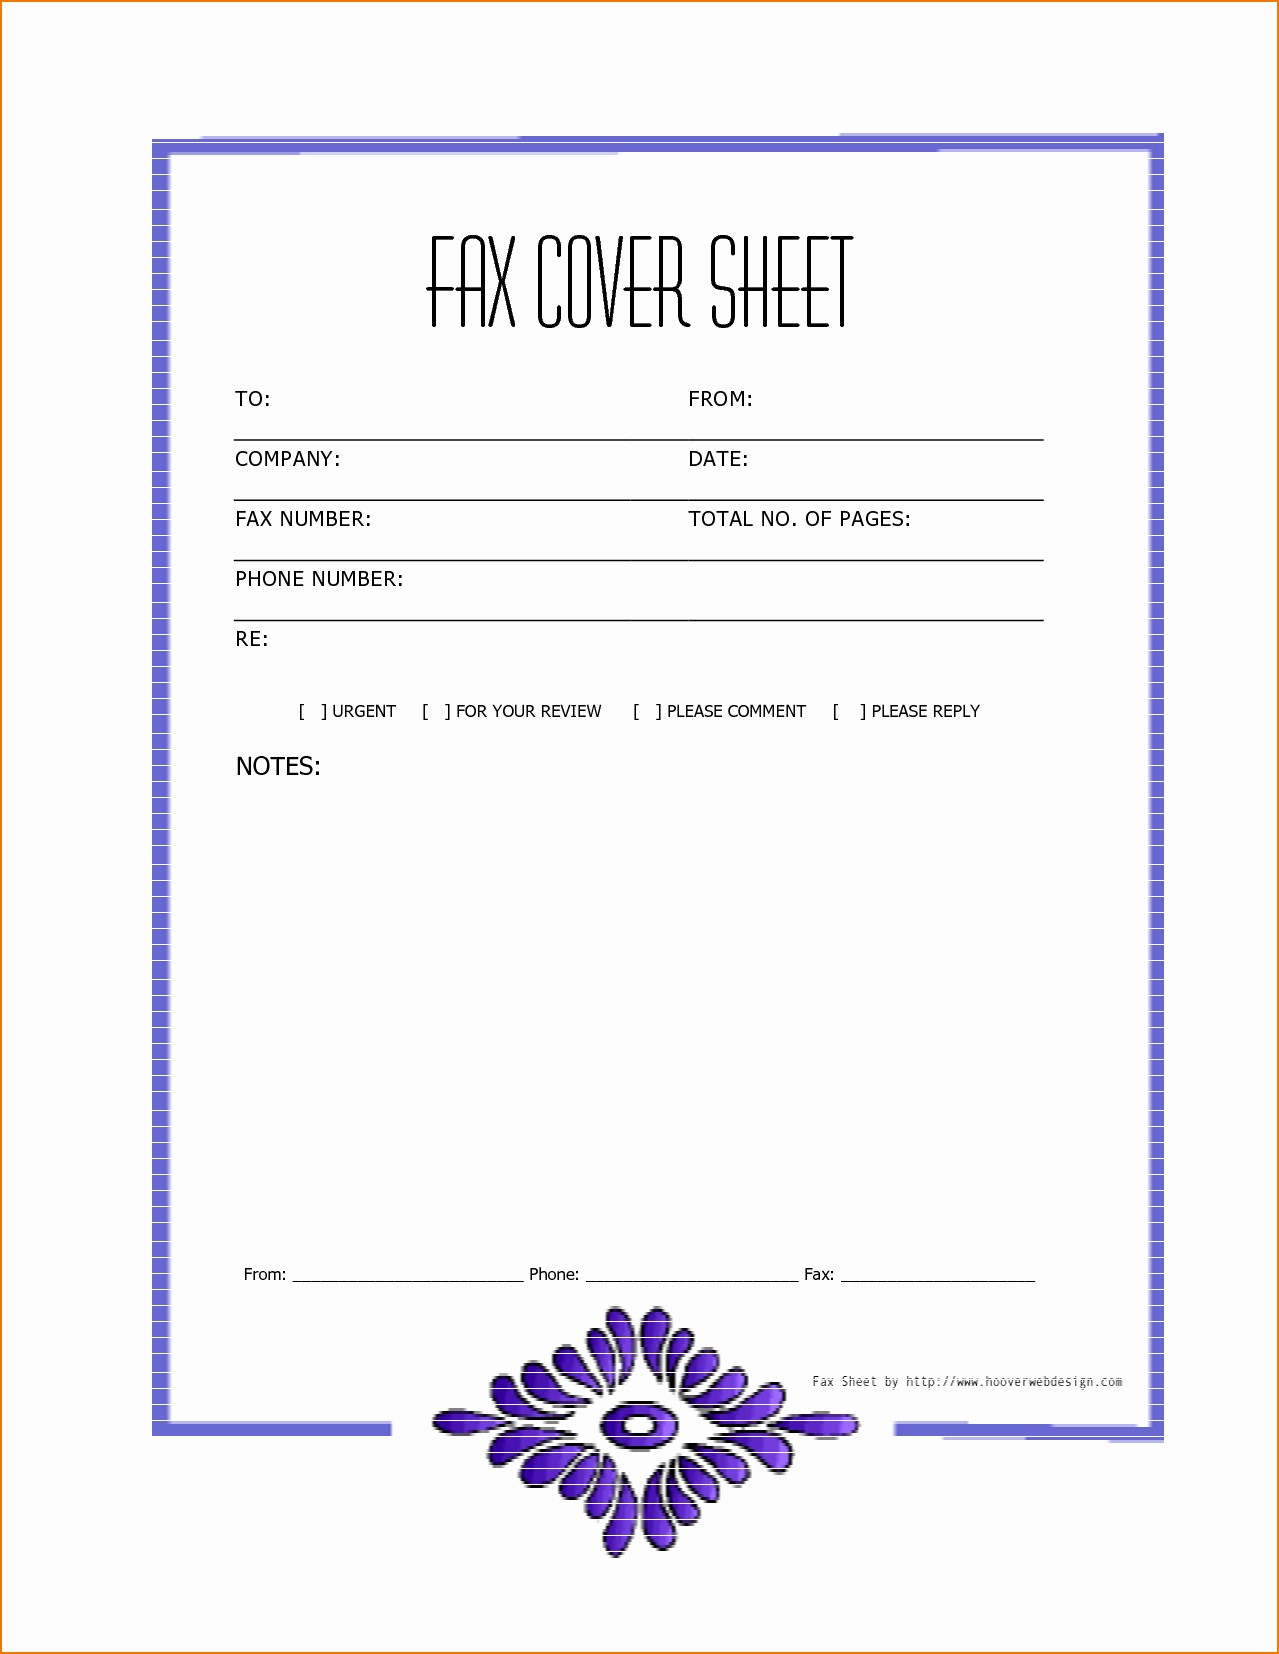 Printable Free Fax Cover Sheet Inspirational 7 Free Printable Fax Cover Sheet